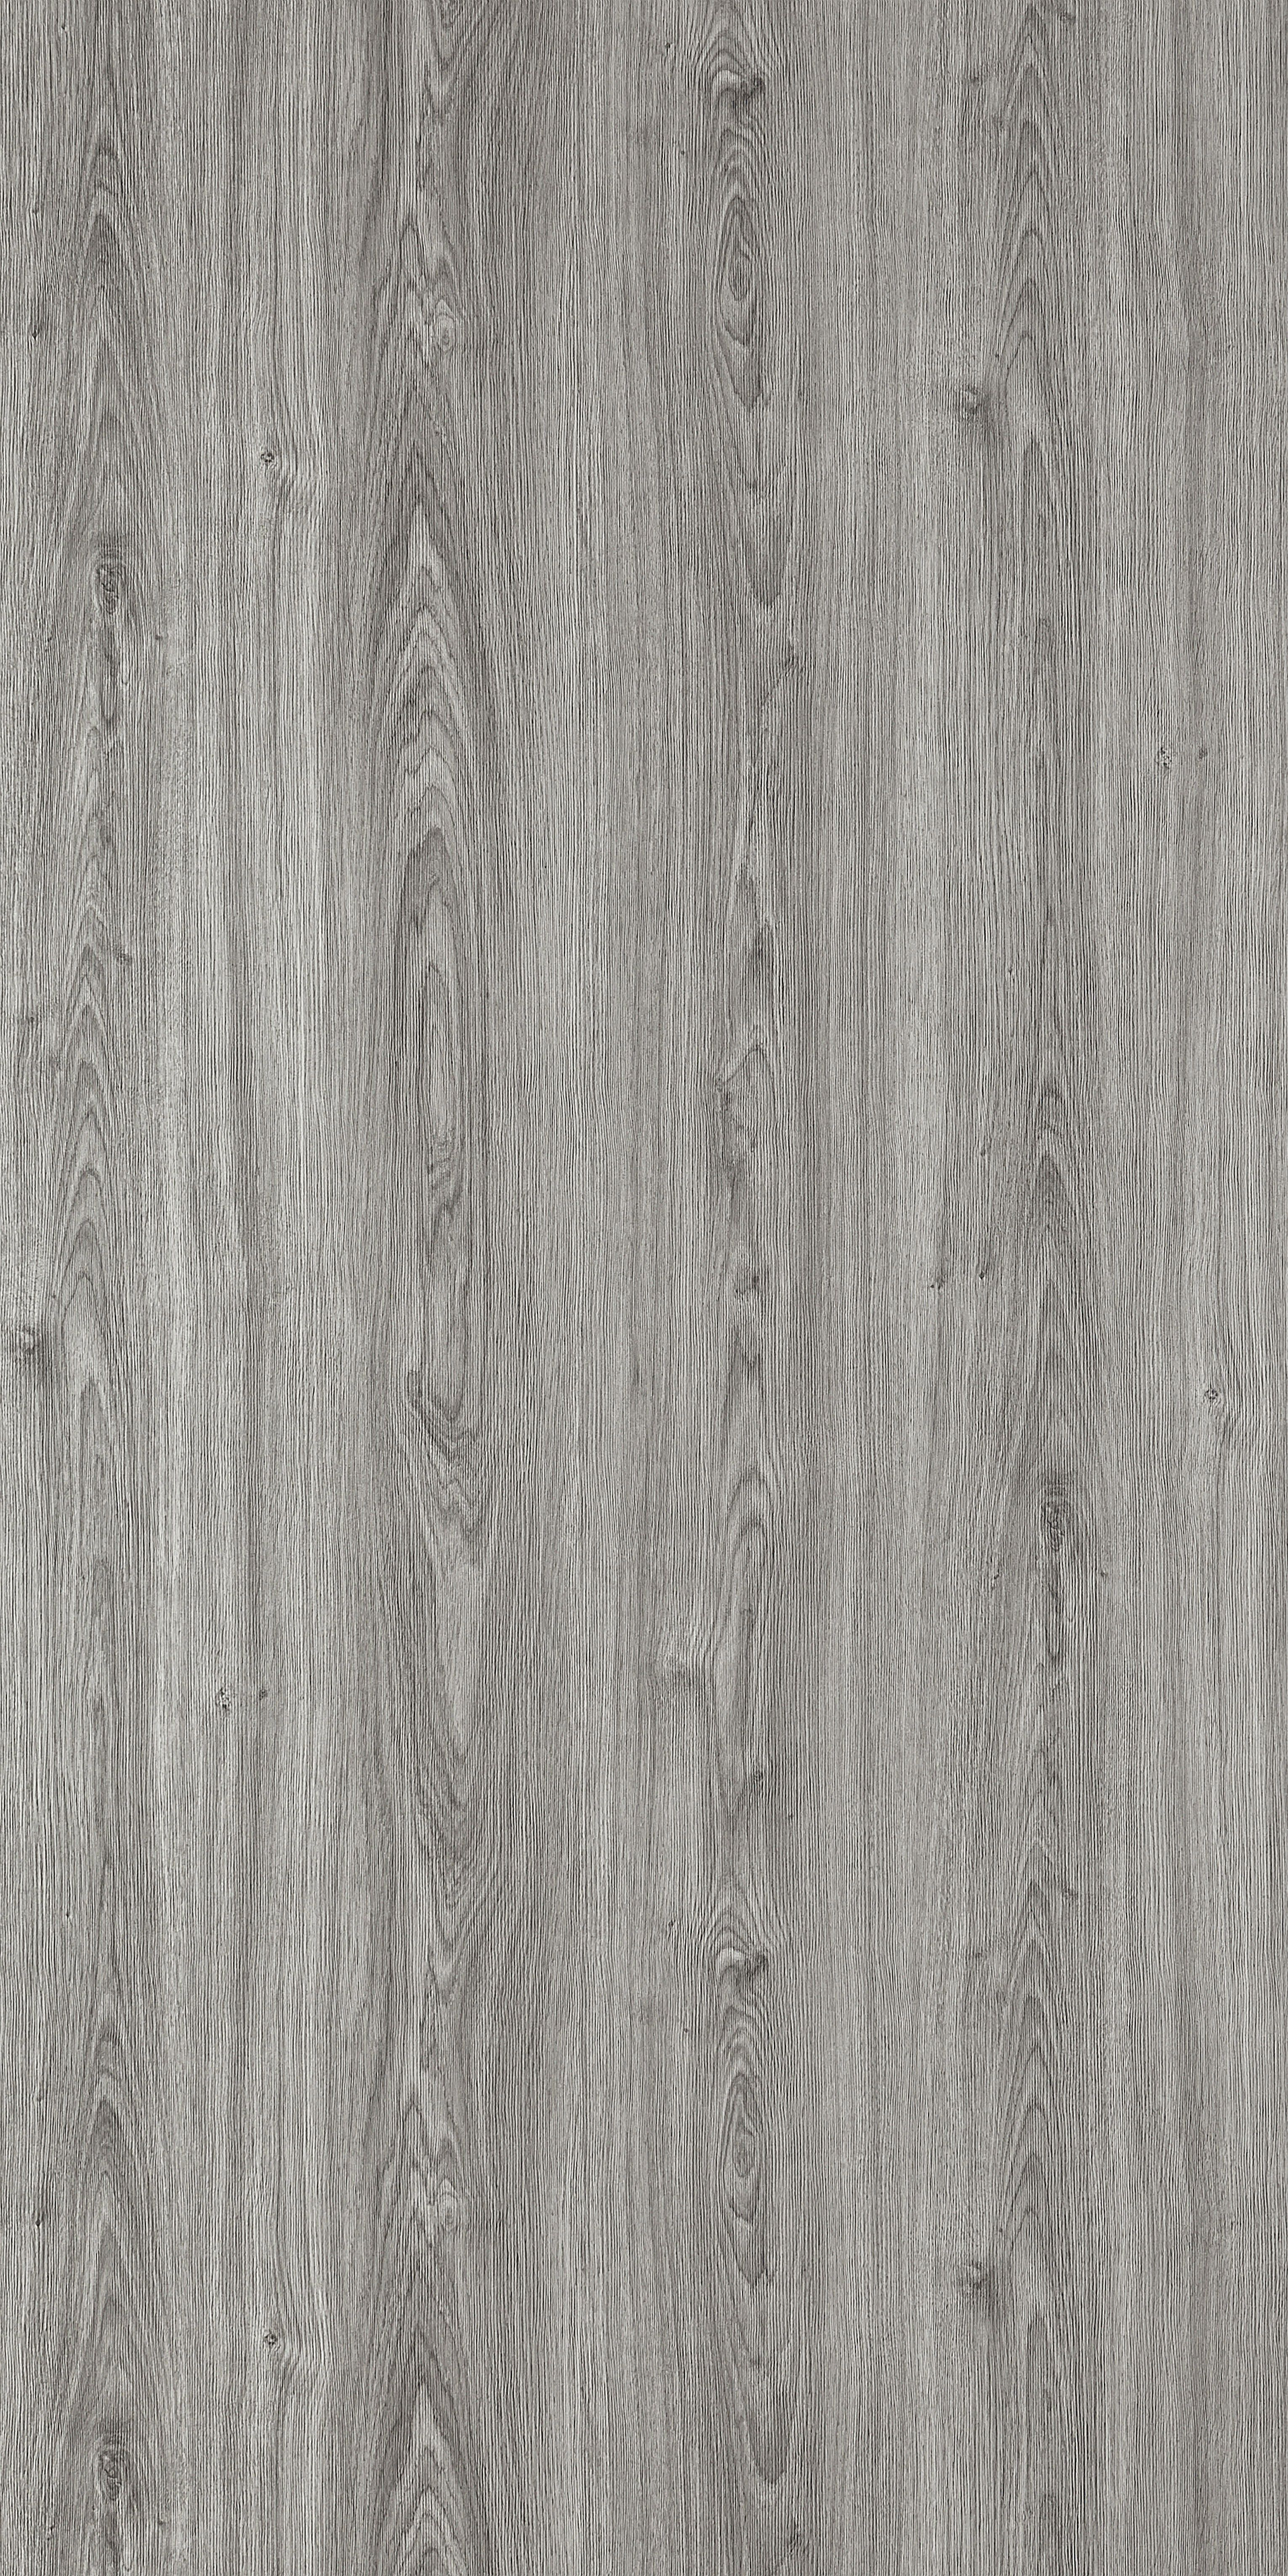 Edl Light Wajar Oak Light Wood Texture Laminate Texture Wood Texture